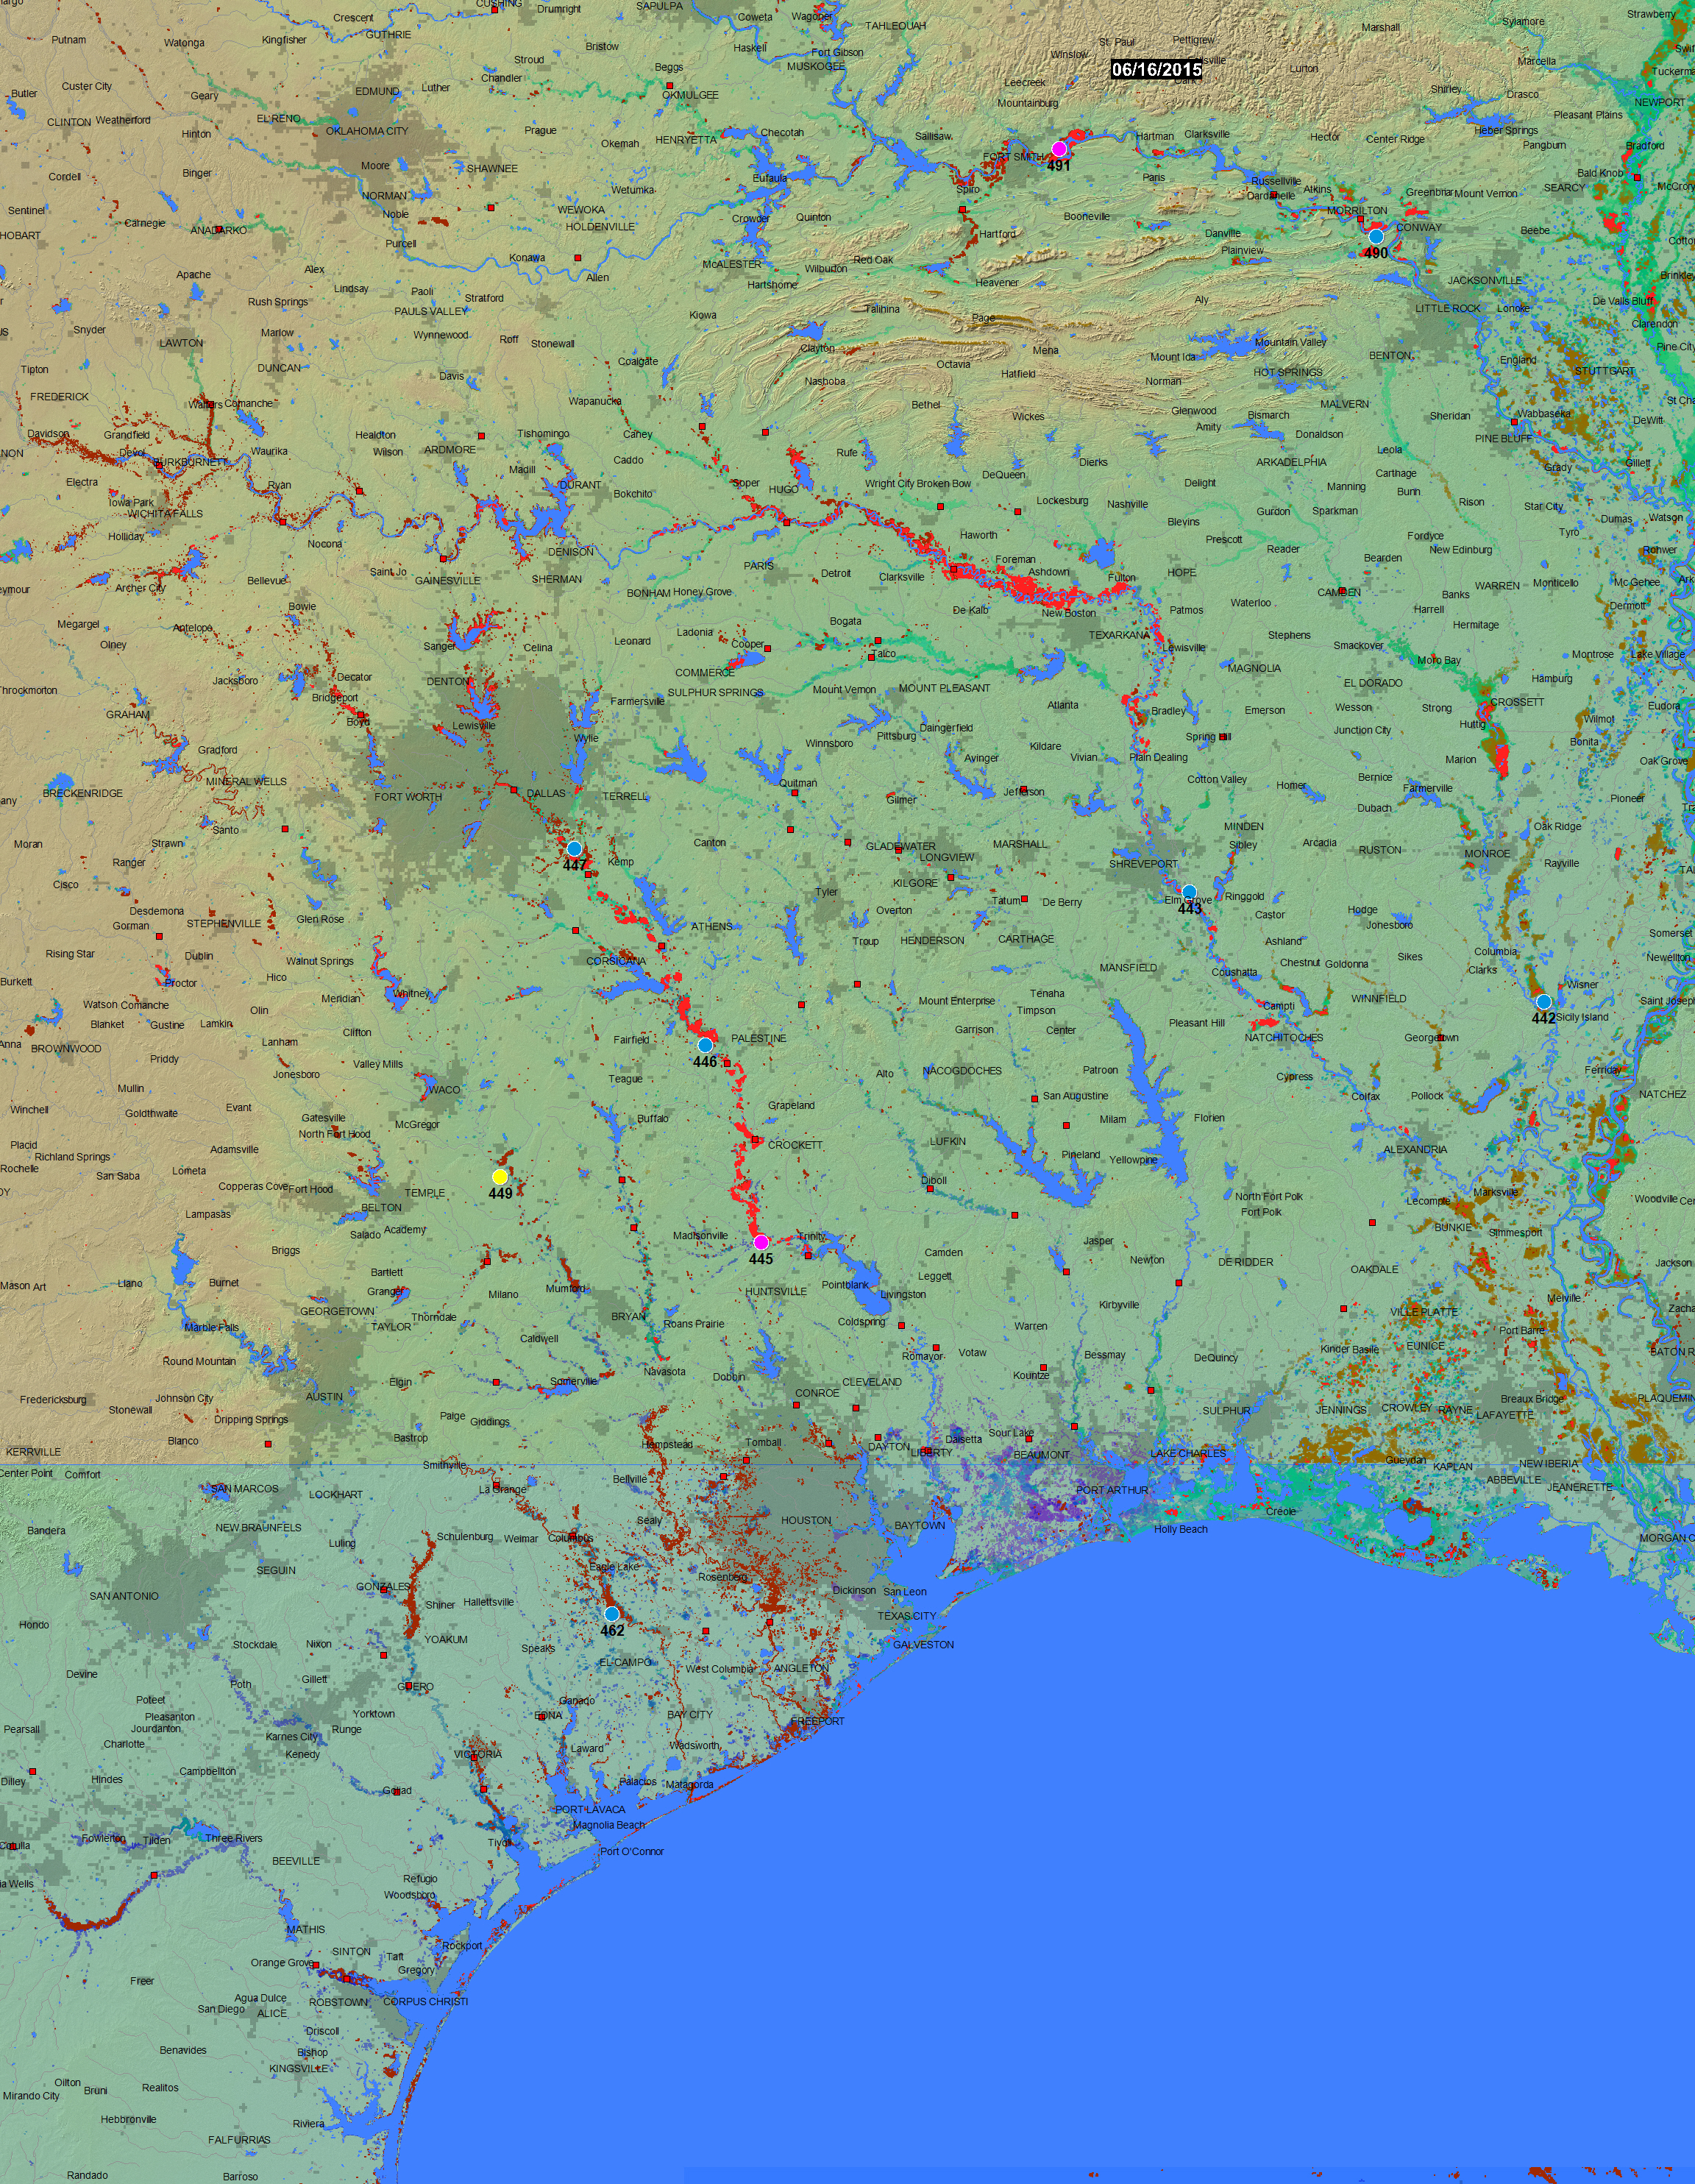 Texas Flooding 2015 Map Texas Flood Map 2015